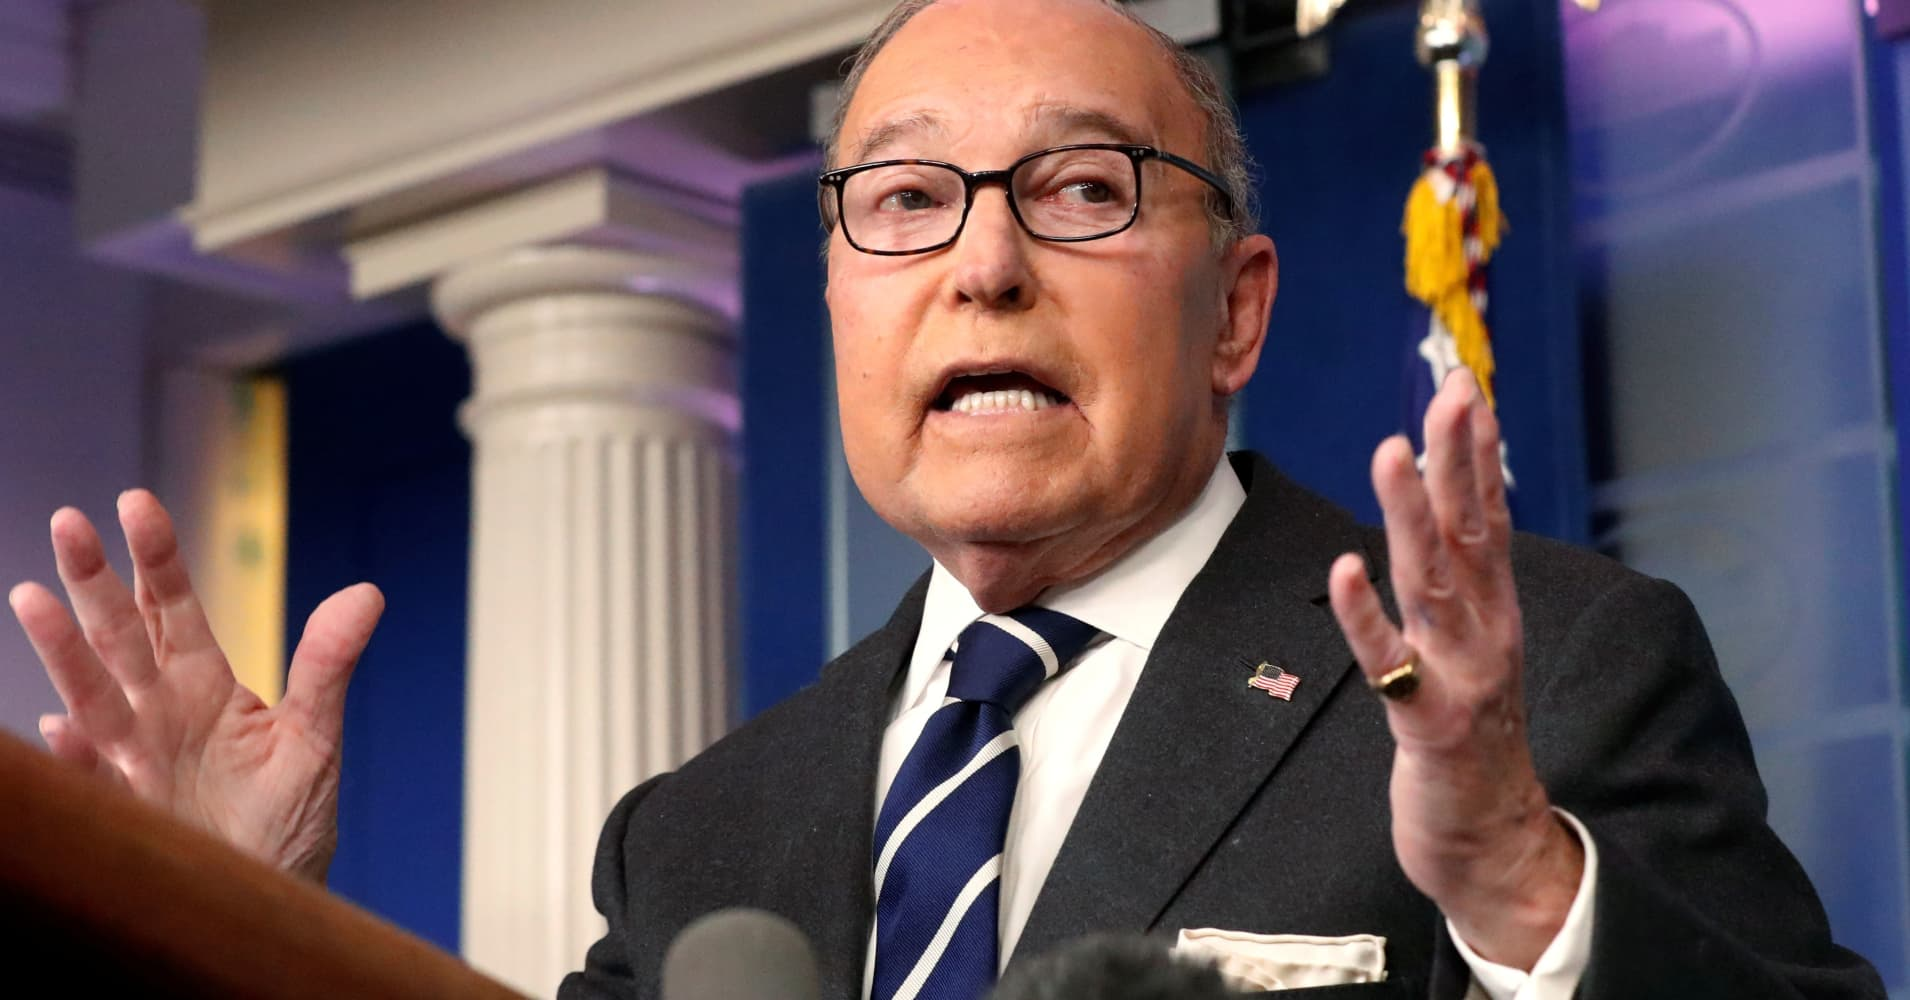 Trump advisor Larry Kudlow: GDP damage from government shutdown is temporary